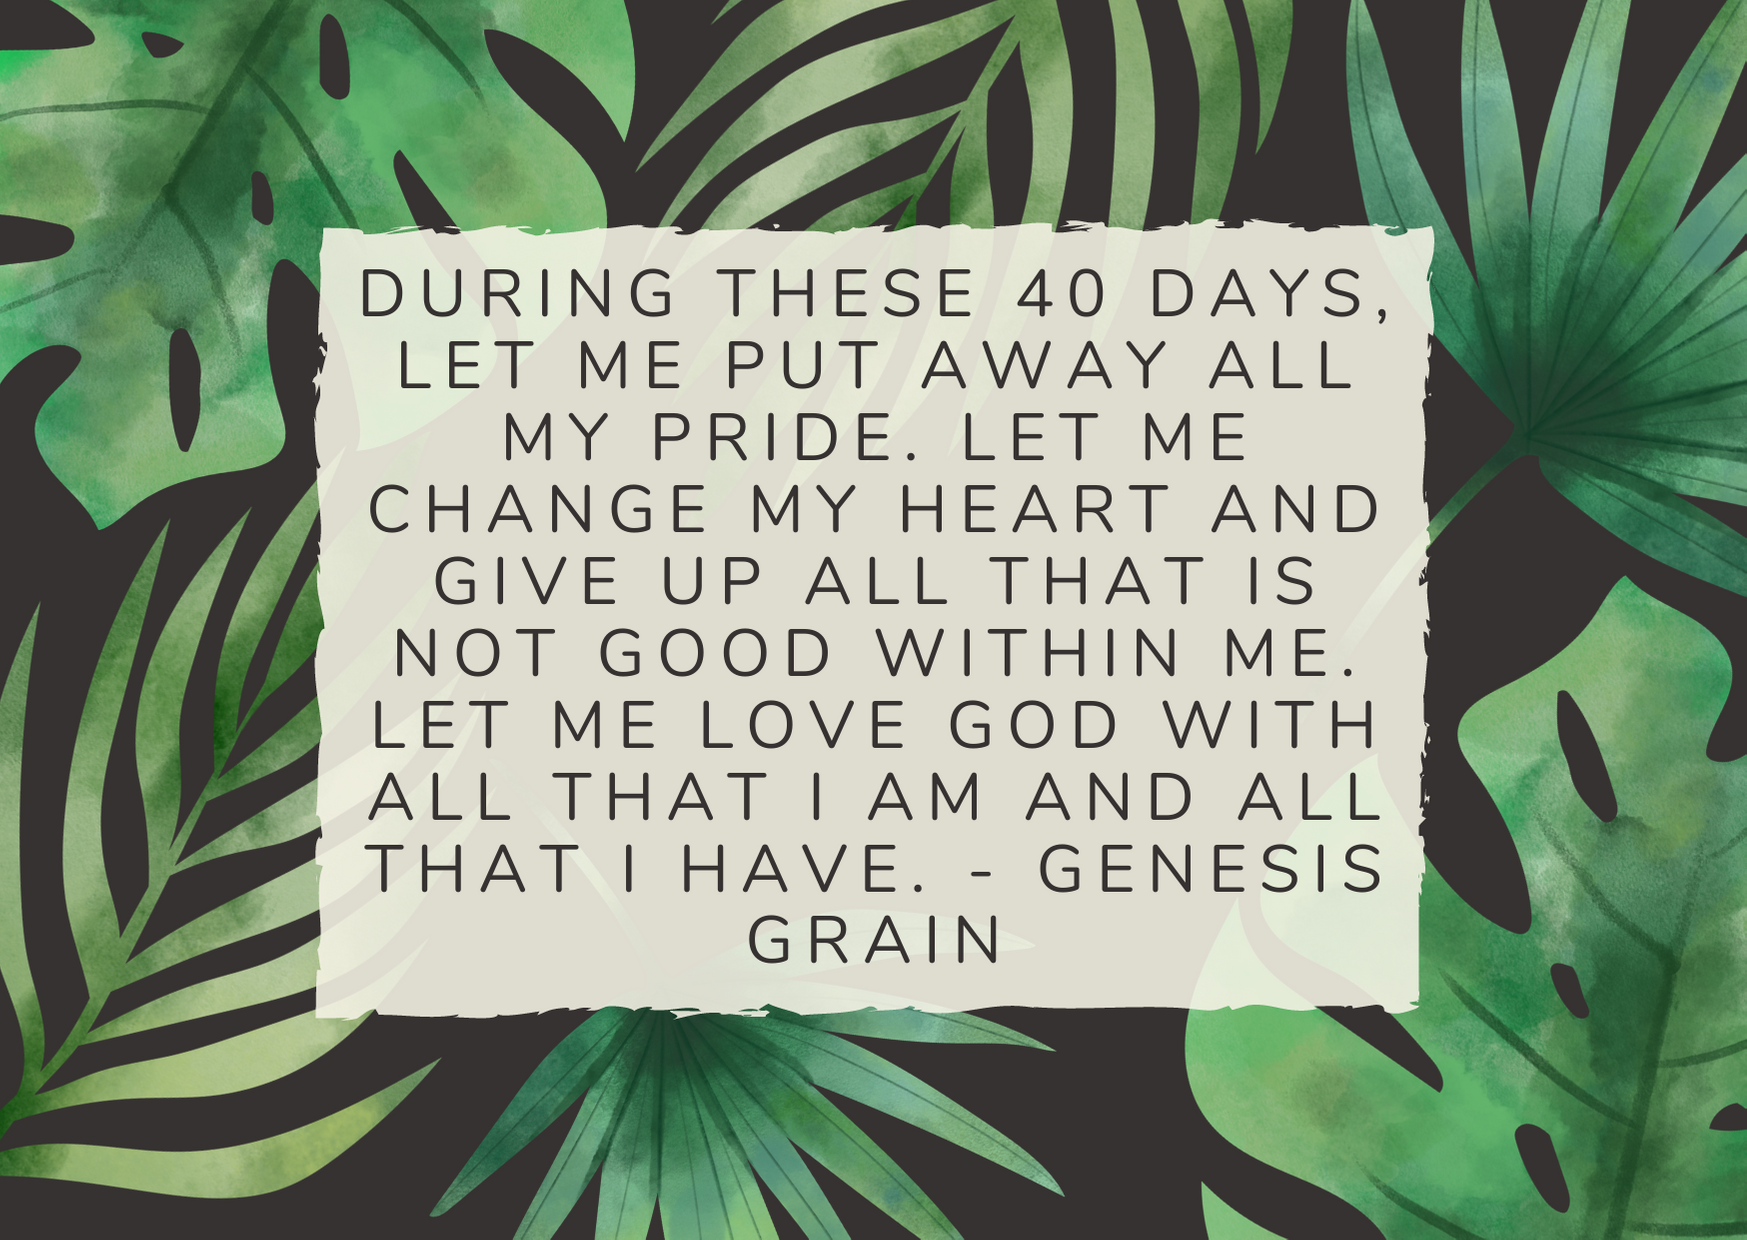 During these 40 days, let me put away all my pride. Let me change my heart and give up all that is not good within me. Let me love God with all that I am and all that I have. - Genesis Grain